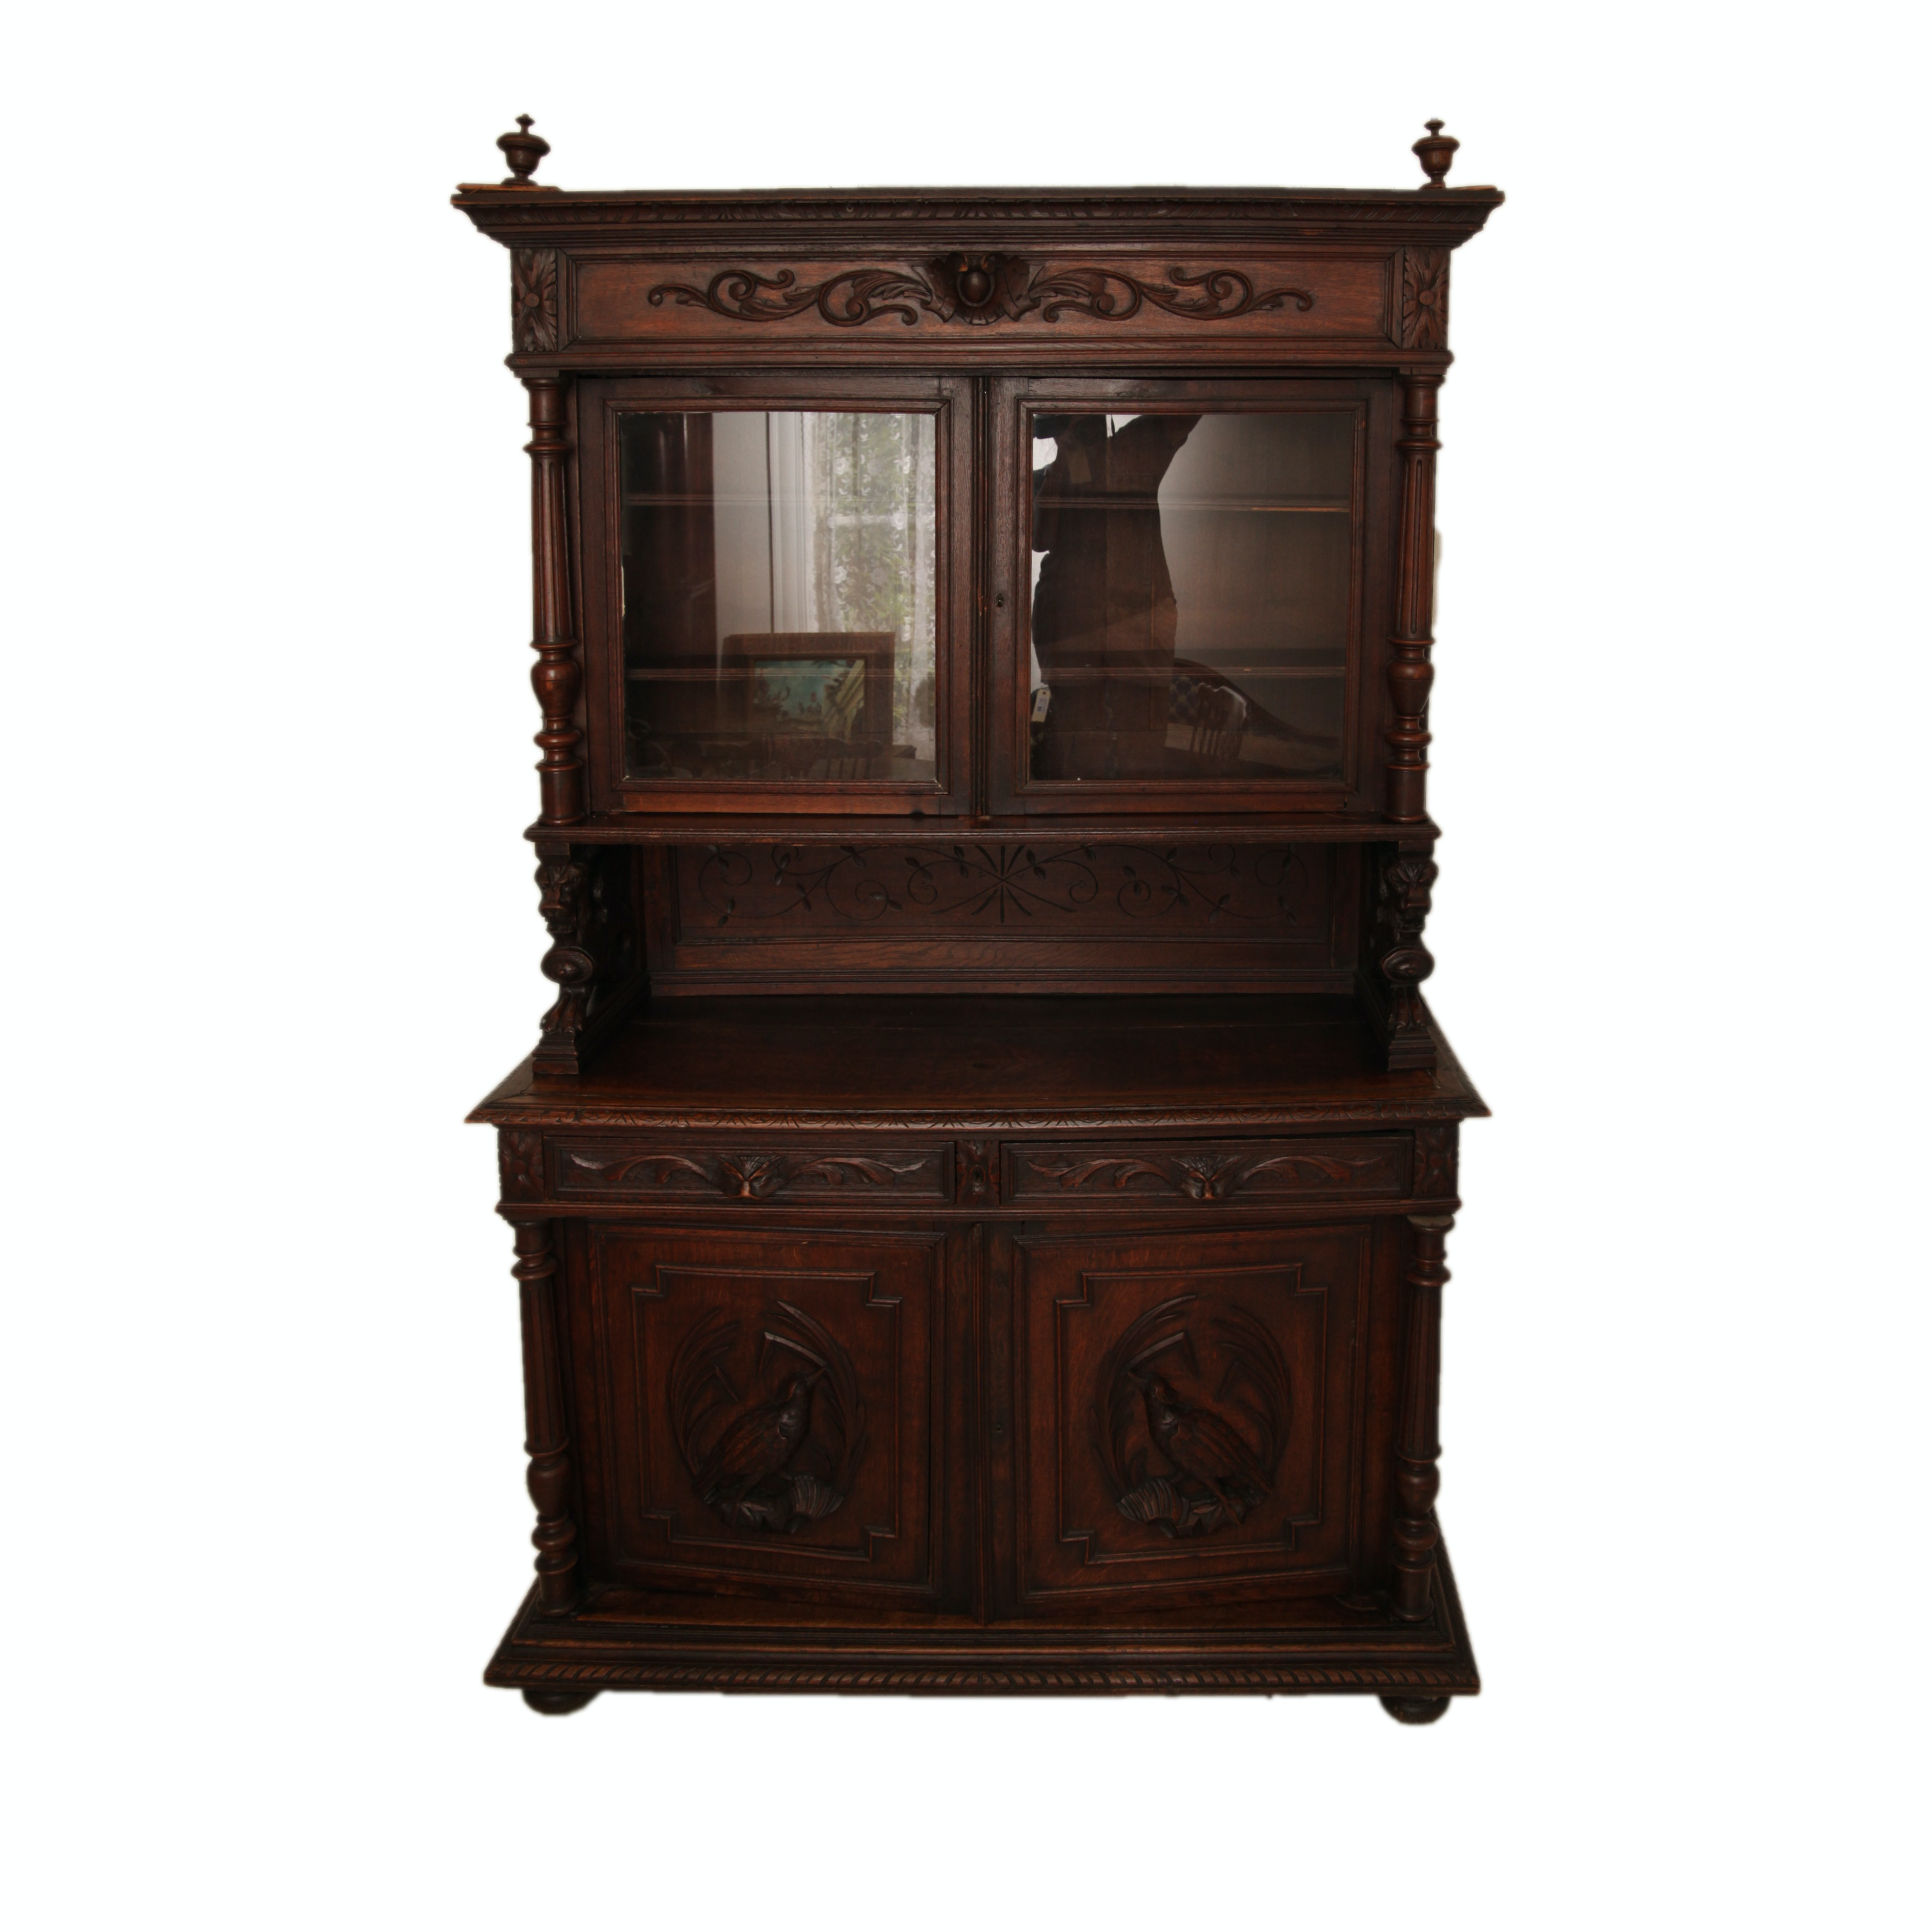 Antique Victorian Renaissance Revival Style Carved Walnut Cabinet